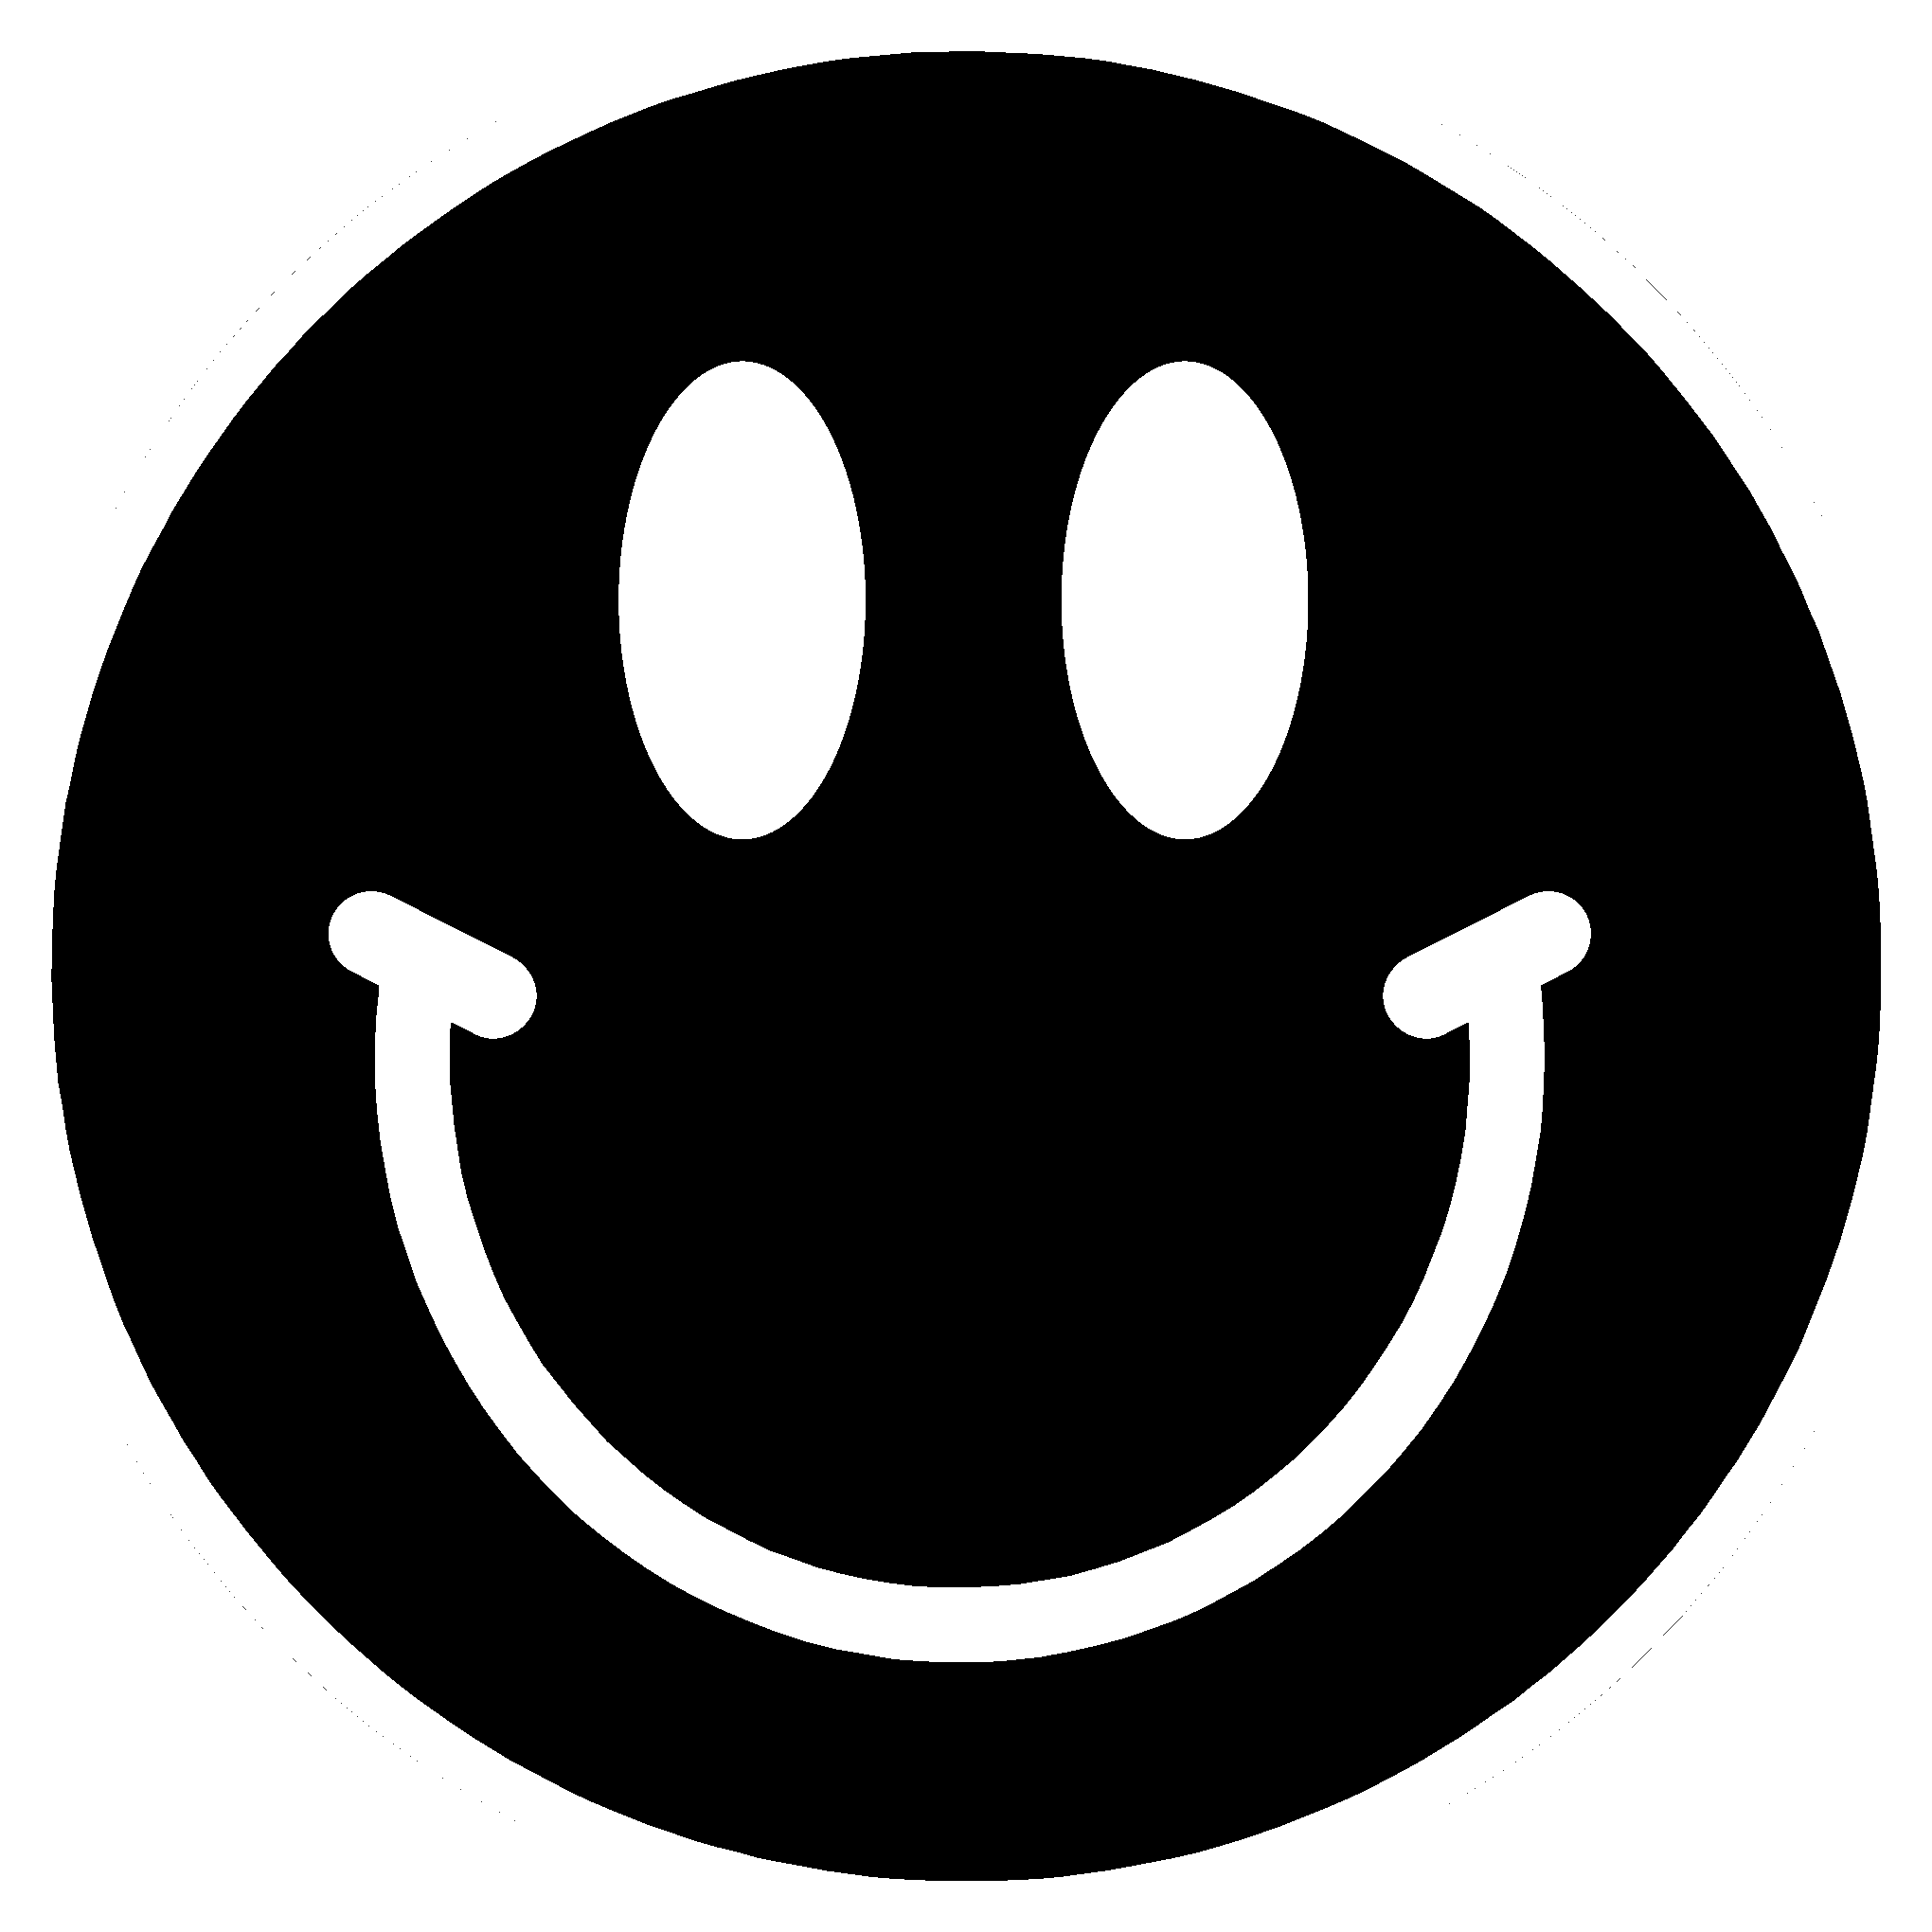 Smiley-face Black And White Clipart - Clipart Kid